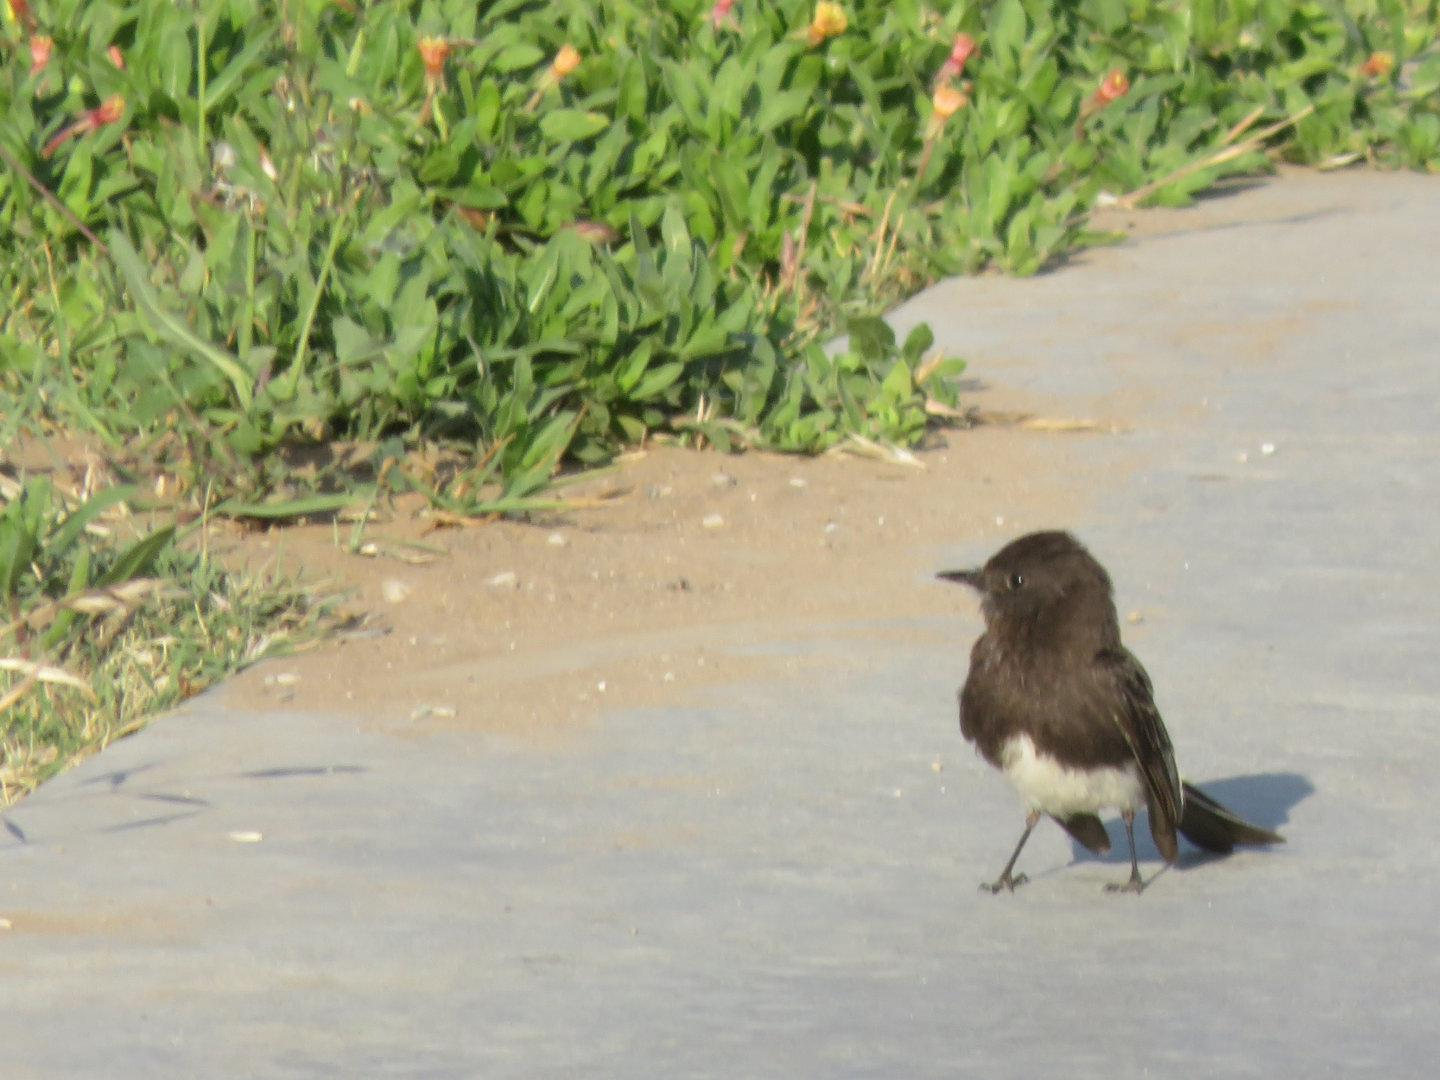 A Black Phoebe on the edge of the bike path not too far from the hawks in the previous picture. (